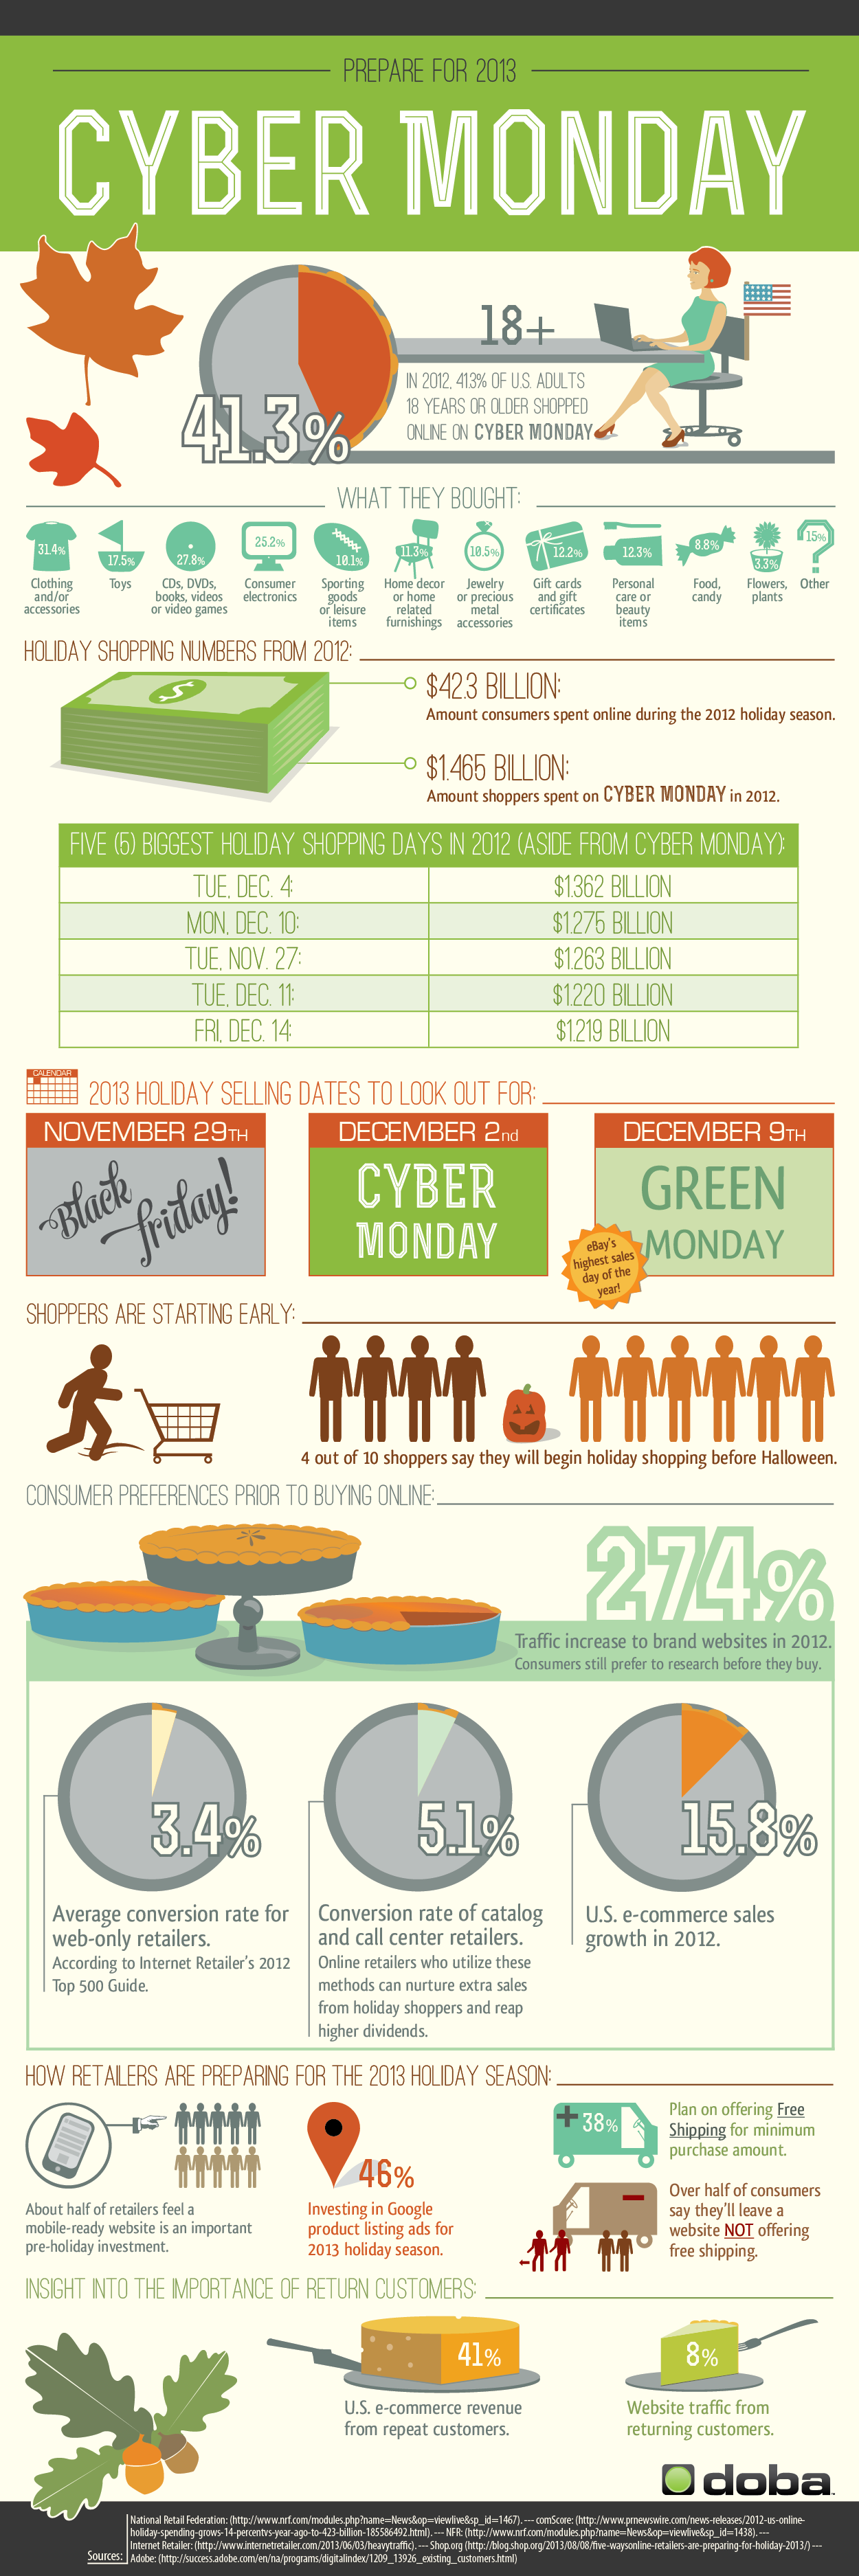 Cyber Deals on Monday Statistics And Facts